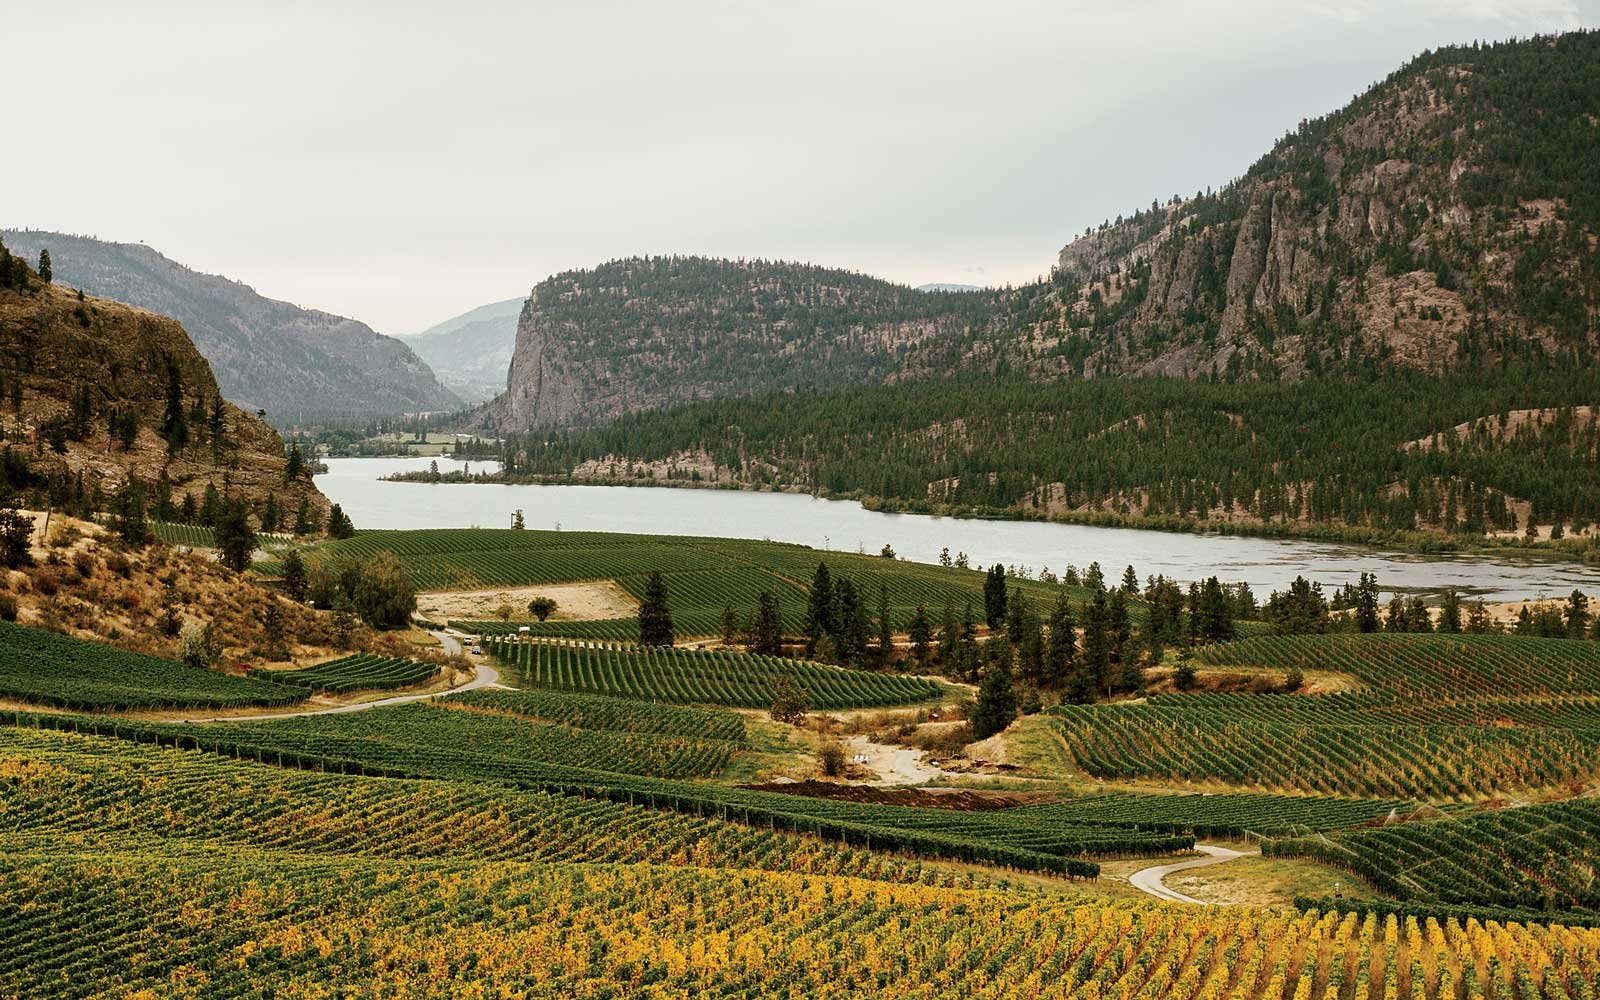 Blue Mountain Winery vineyards in Canada's Okanagan Valley